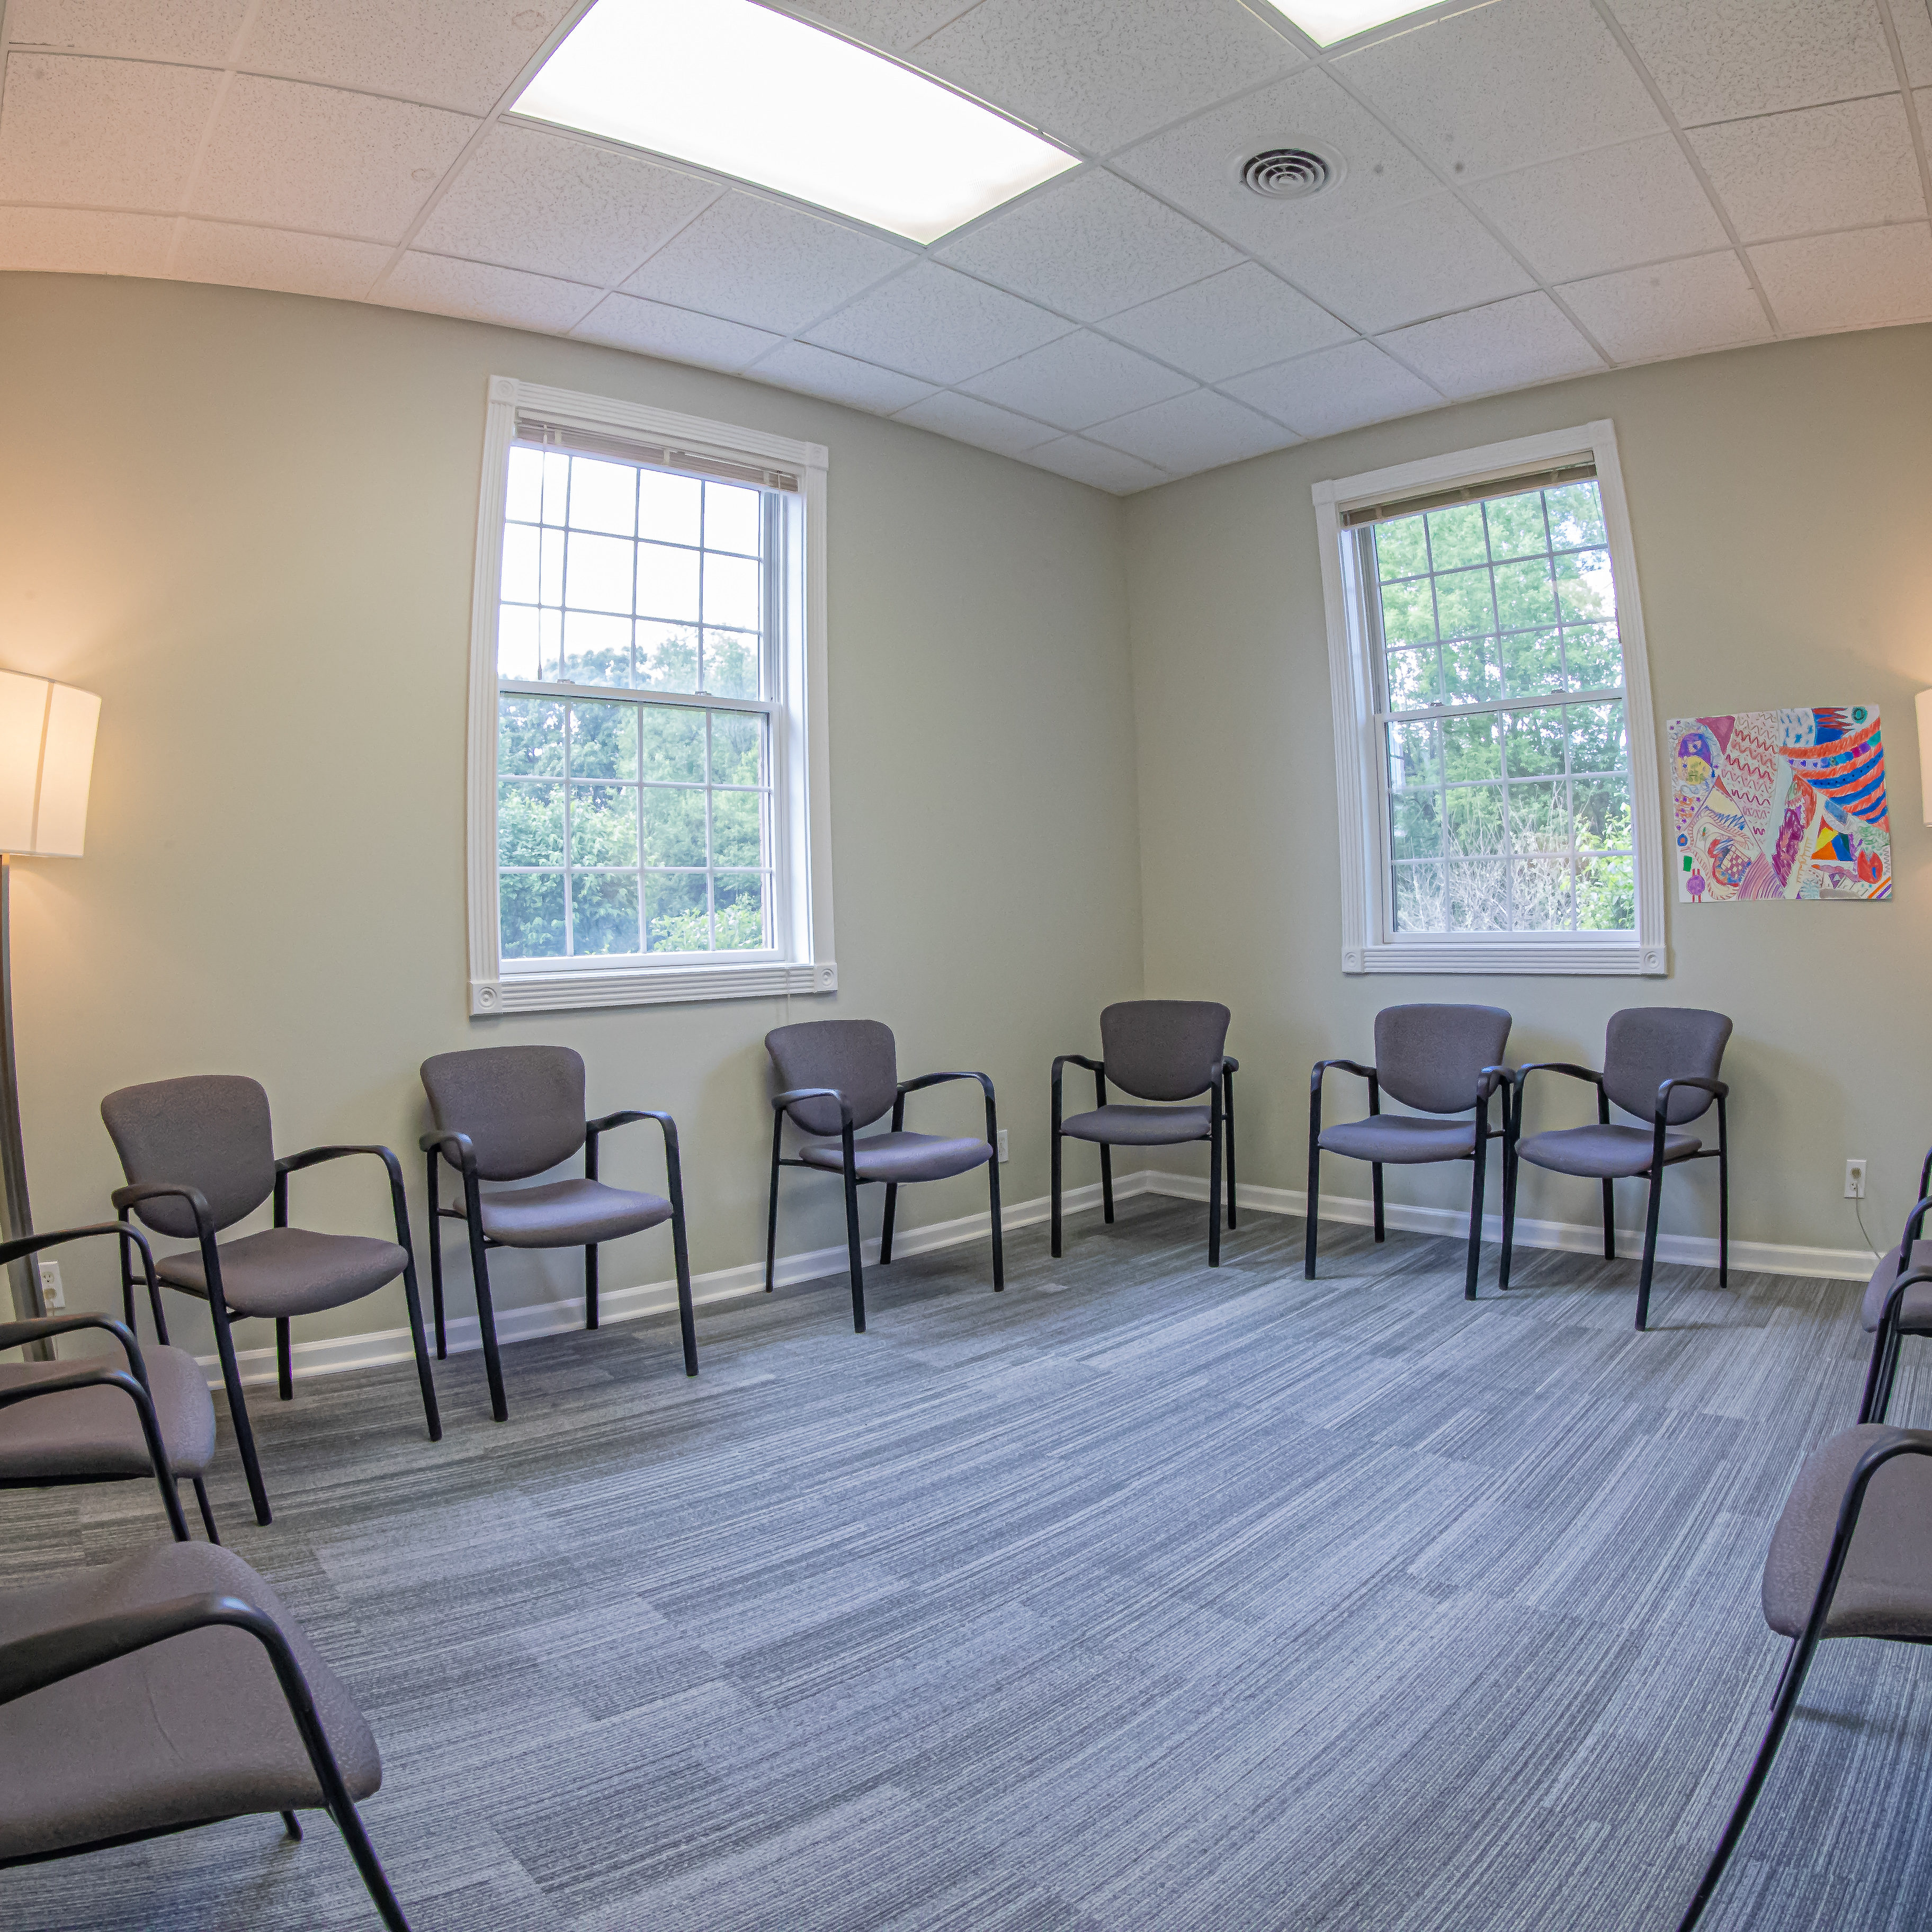 Northern illinois recovery facility therapy room